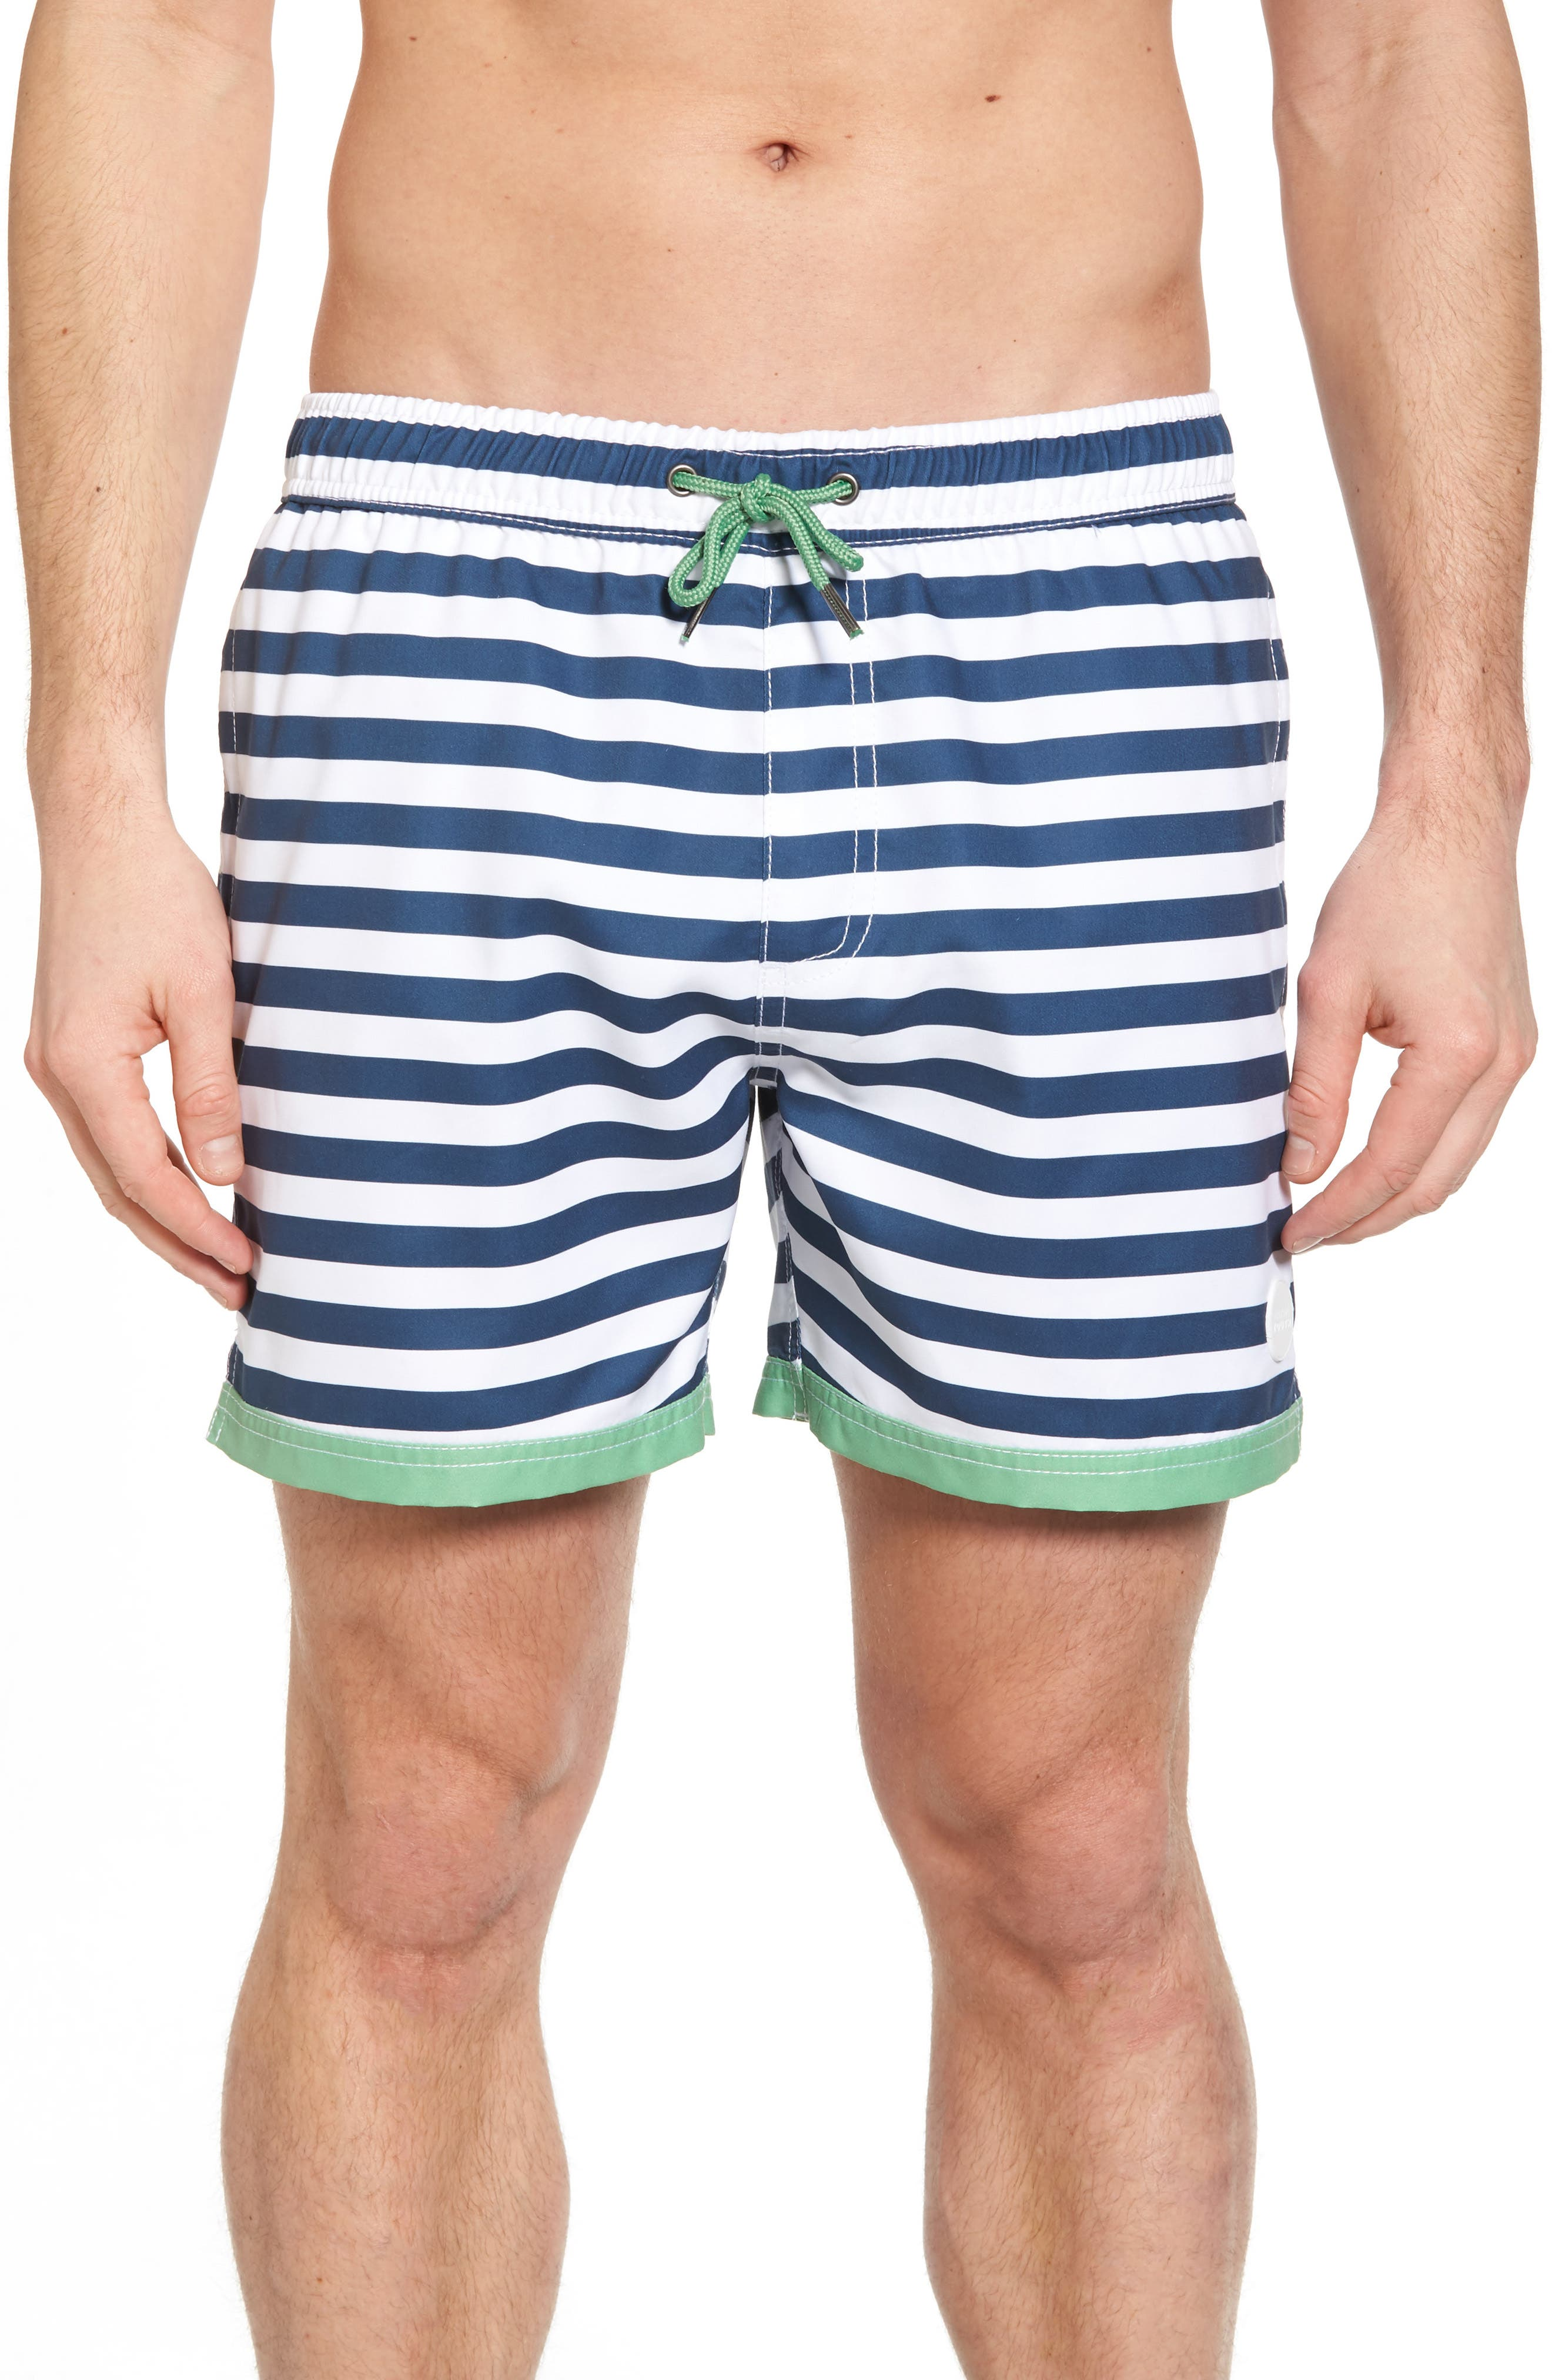 Abalone Swim Trunks,                         Main,                         color, 400